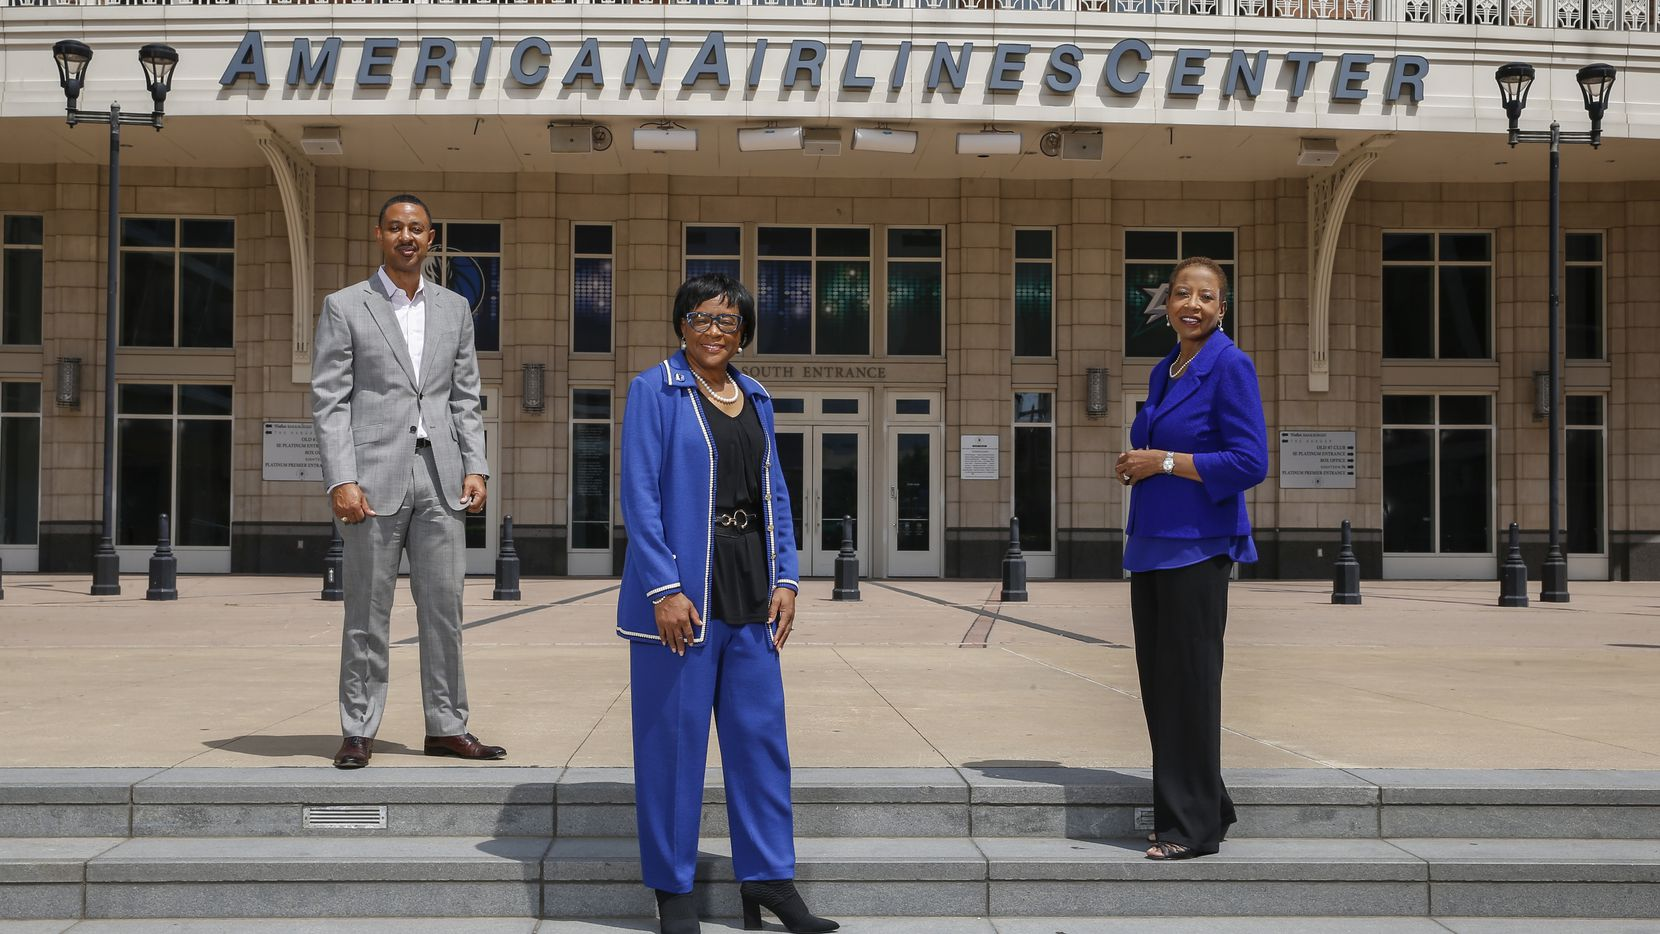 Corey Anthony (left), chief diversity officer at AT&T, Cynt Marshall, CEO of the Dallas Mavericks, and Hattie Hill, CEO of the T.D. Jakes Foundation, posed for a photograph on July 8 at Victory Plaza in Dallas.